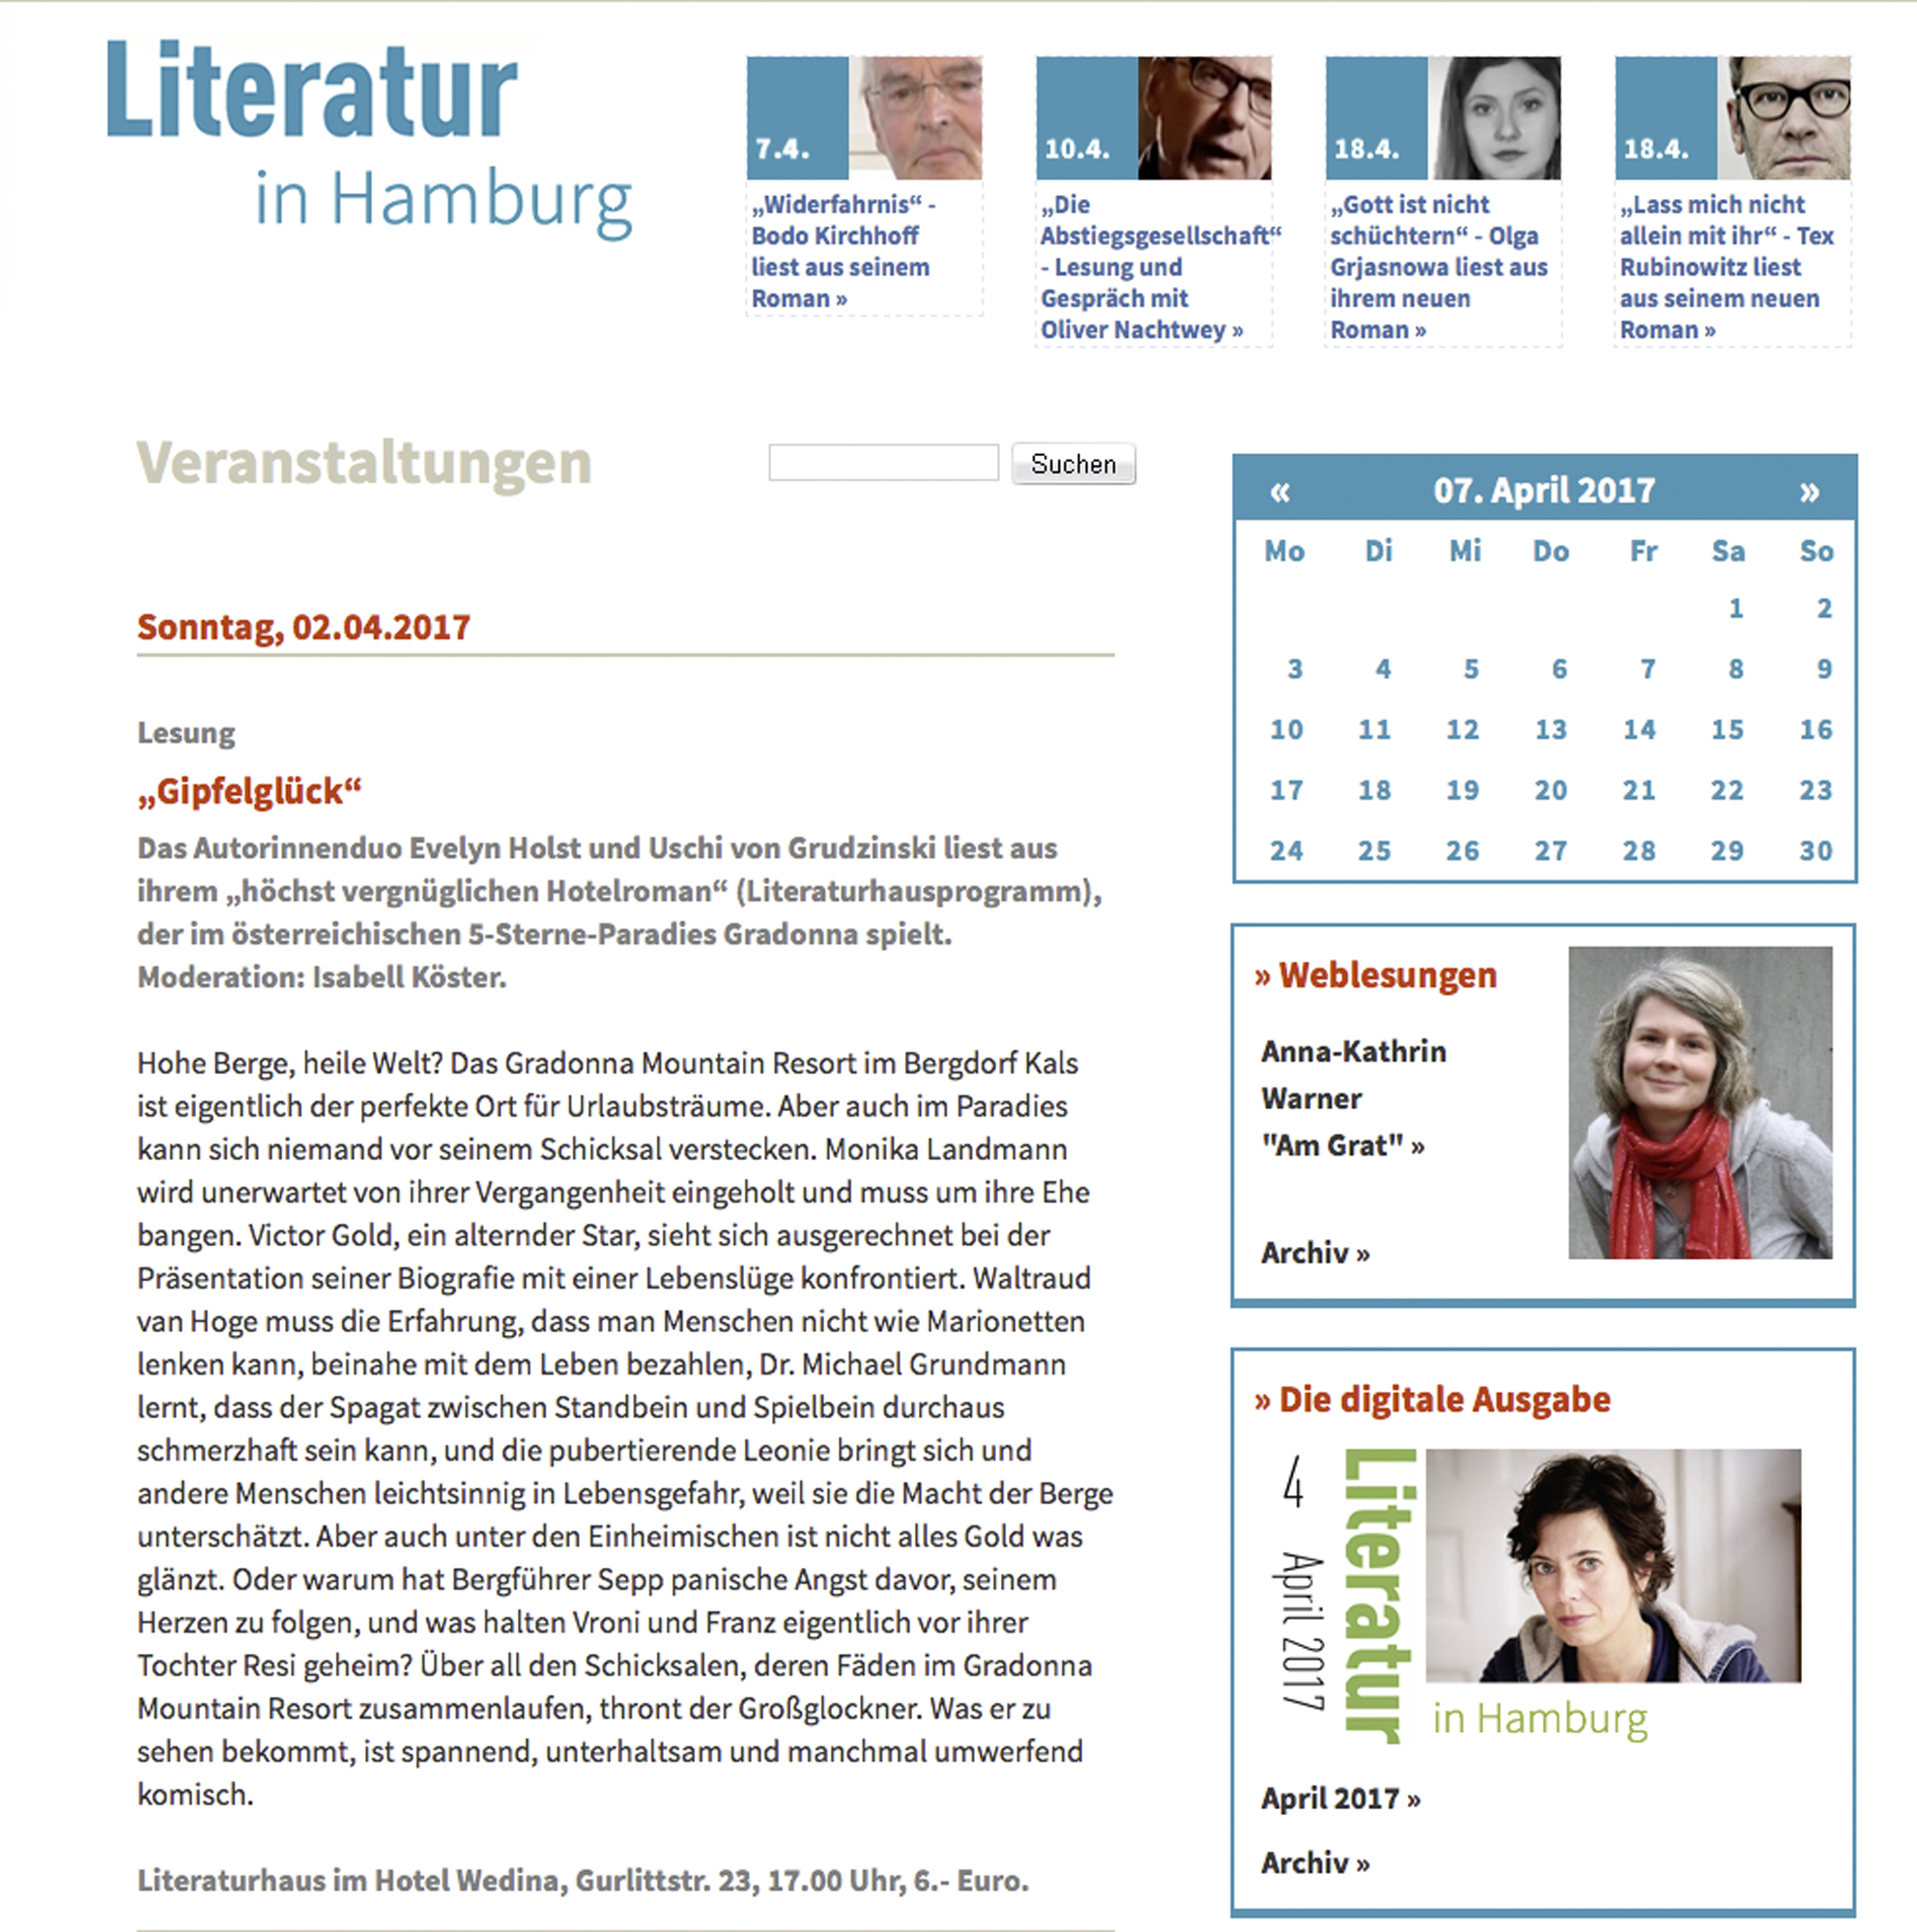 Literatur in Hamburg